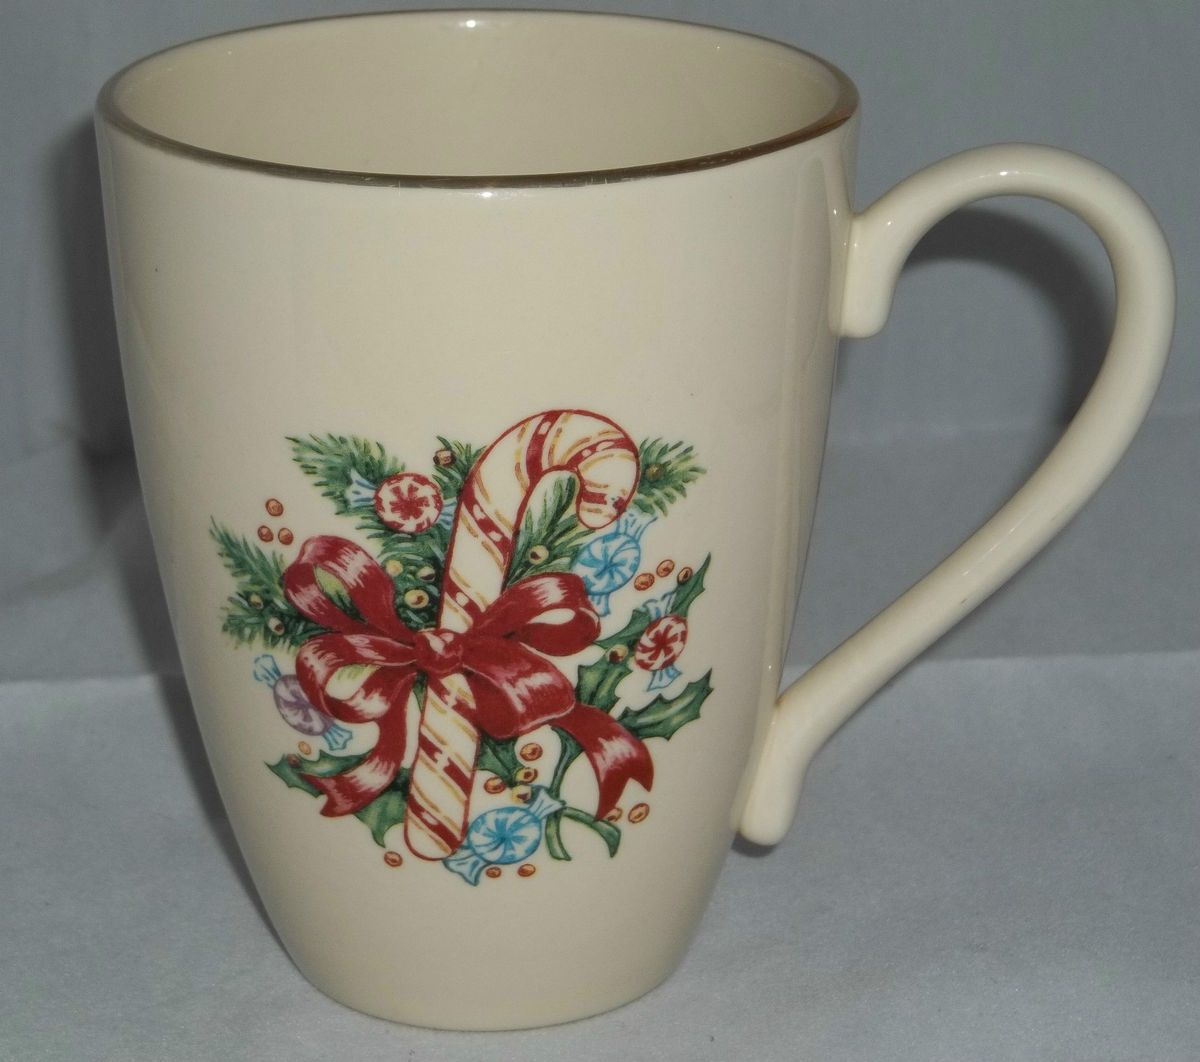 Lenox Holiday Coffee Mug Cup Candy Cane Holly Gold Trim Personalized